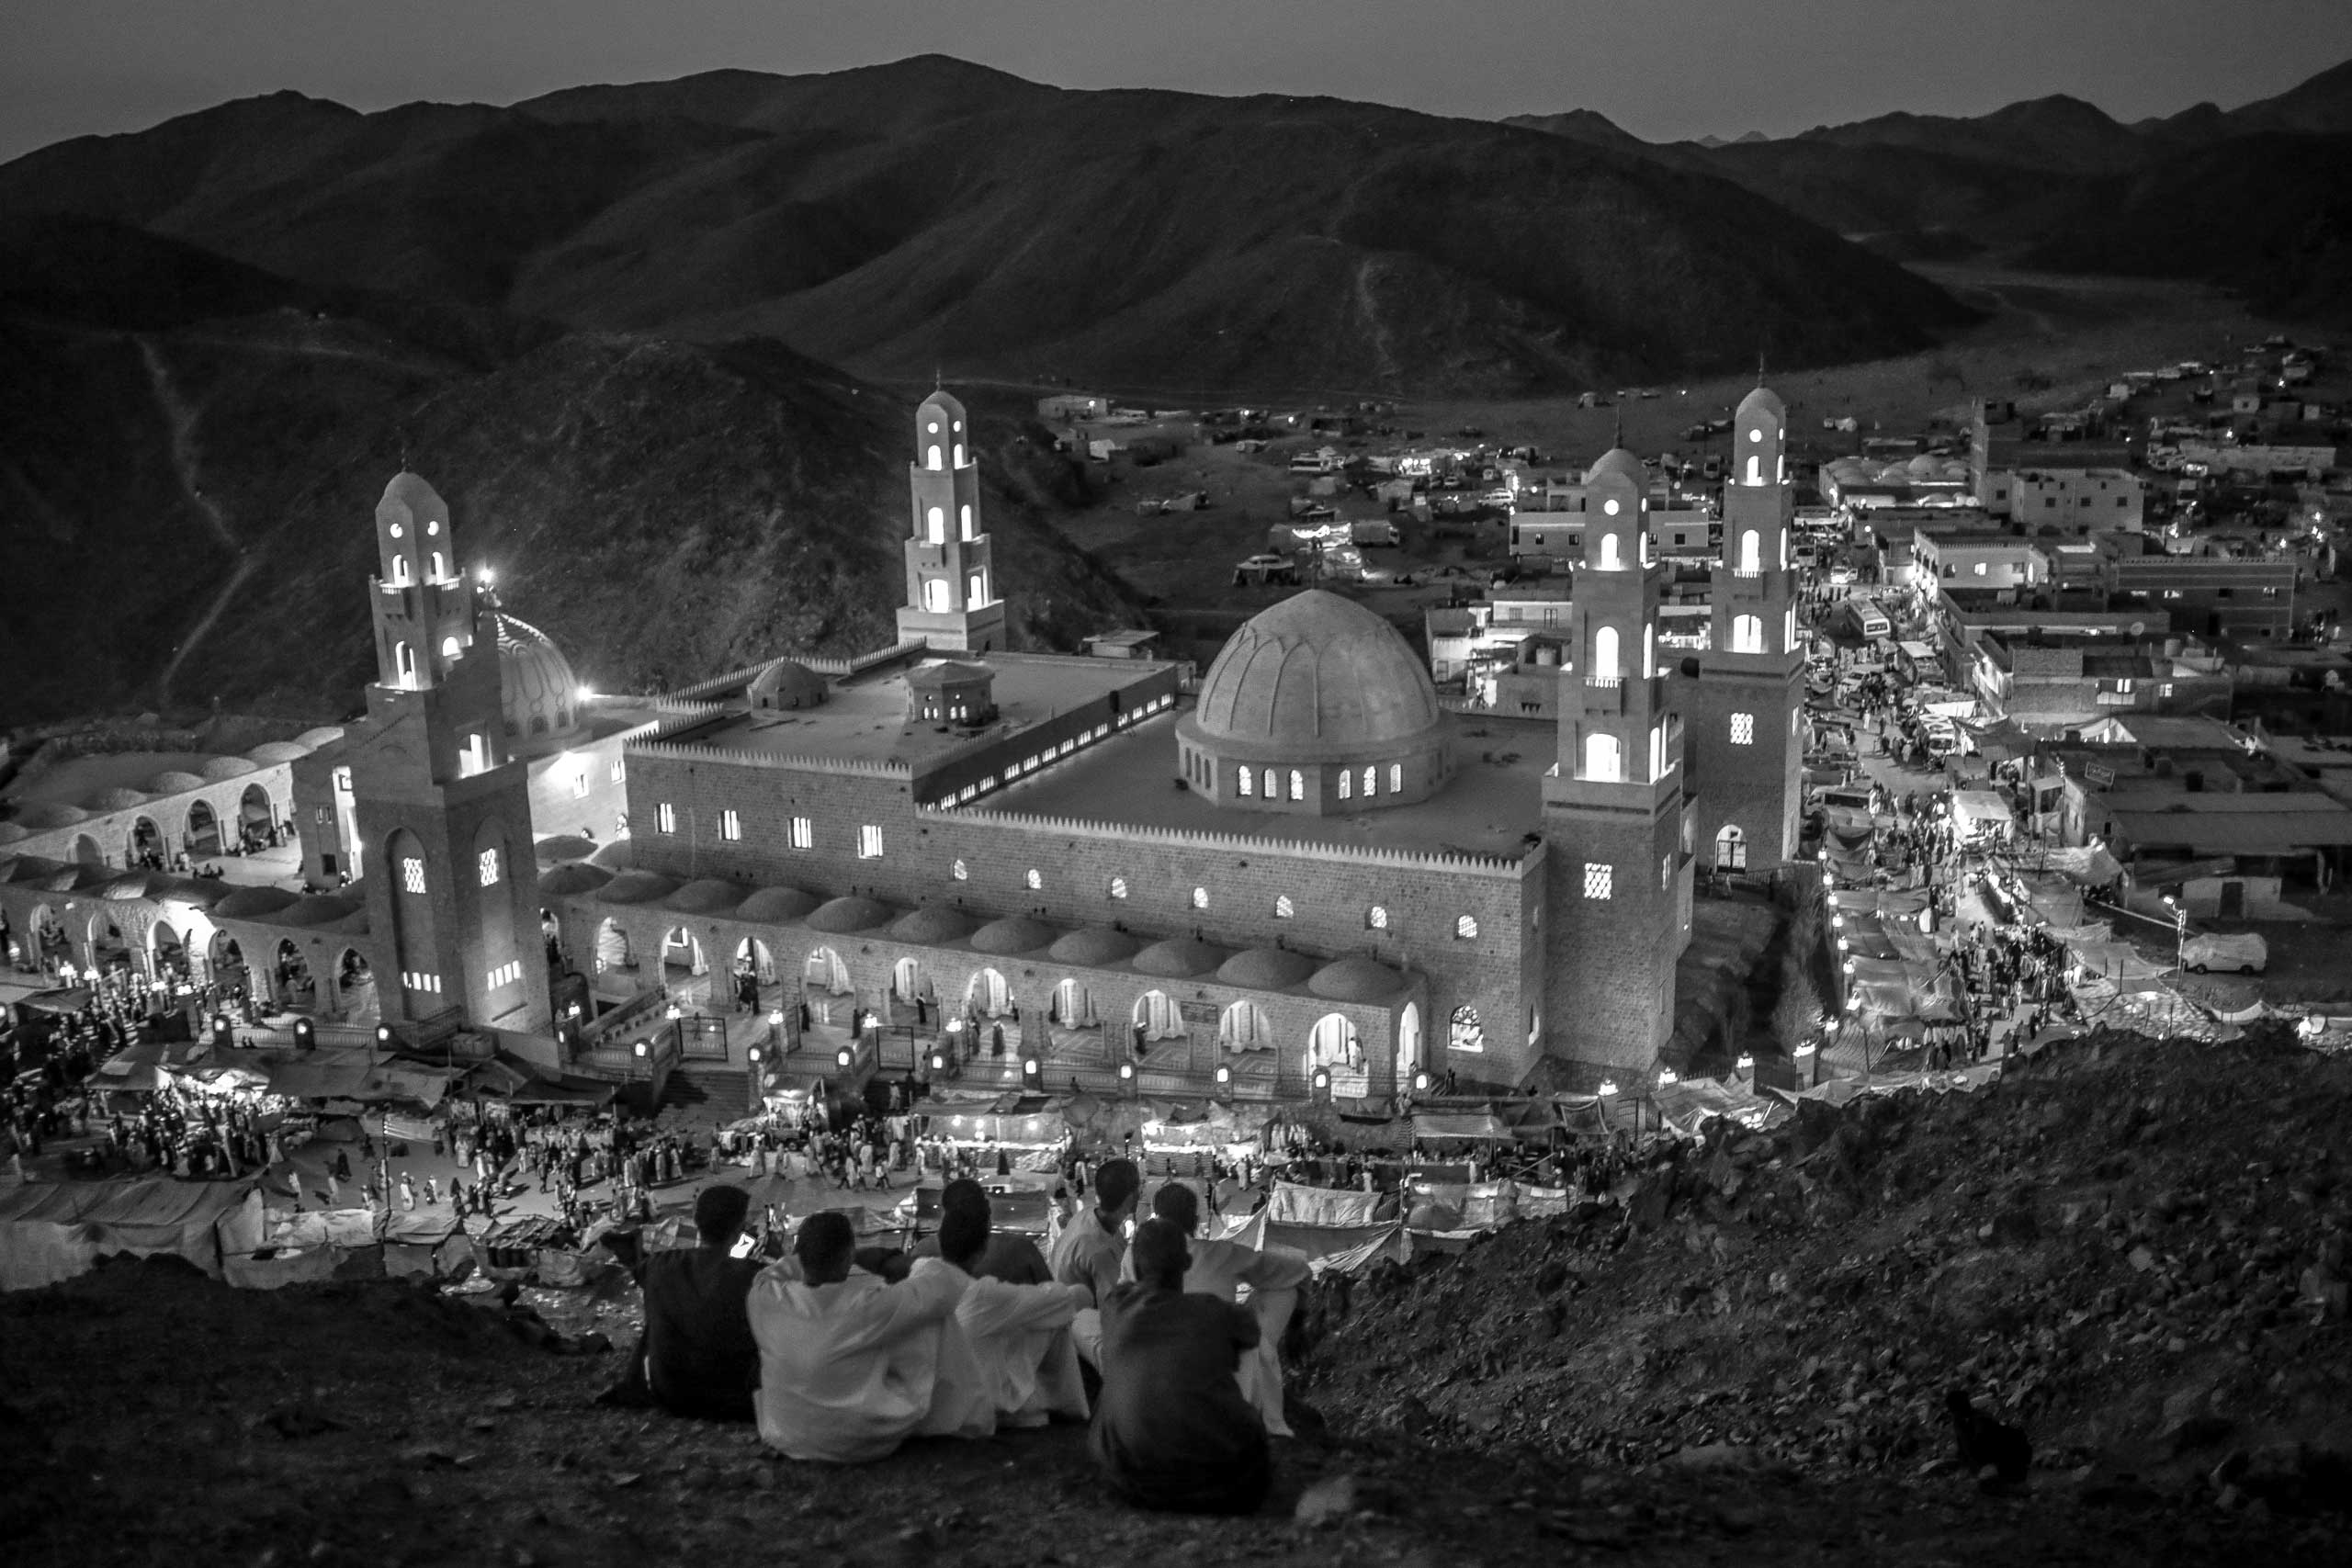 Worshippers look onto the mosque of Abul-Hassan Al-Shazly during the annual celebration of his birth. Humaithara, Red Sea Governorate, Egypt. Sept, 30, 2014.